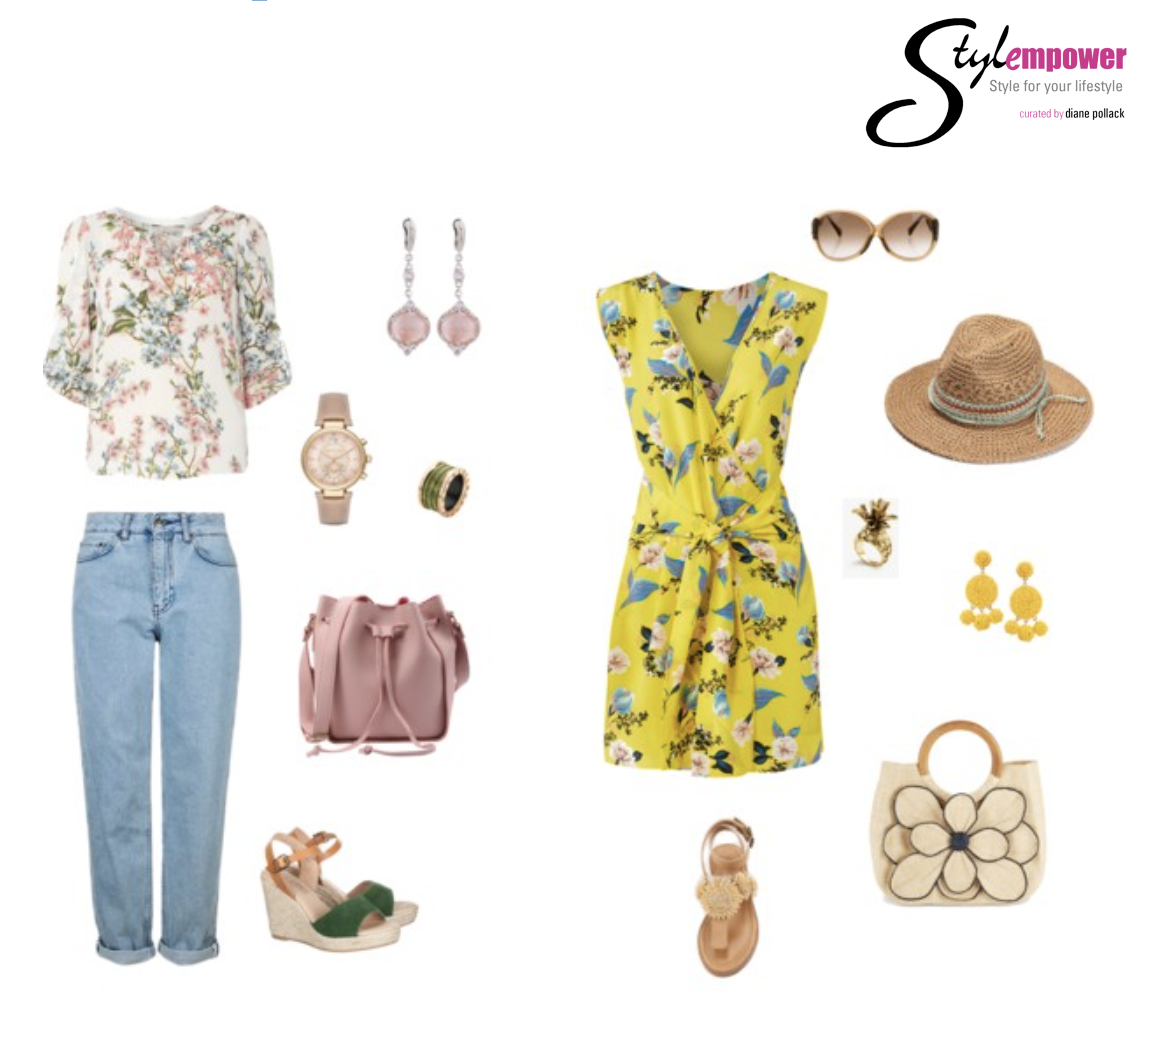 Summer Weekender  Stylist Tip  - Outfit 1 - Pull out colors from the print. Using different colors for the shoe and the bag makes it look more naturally styled and not overly international.  Stylist Tip  - Outfit 2 -  Accessories are key. Add a hat to shade yourself and for added style.